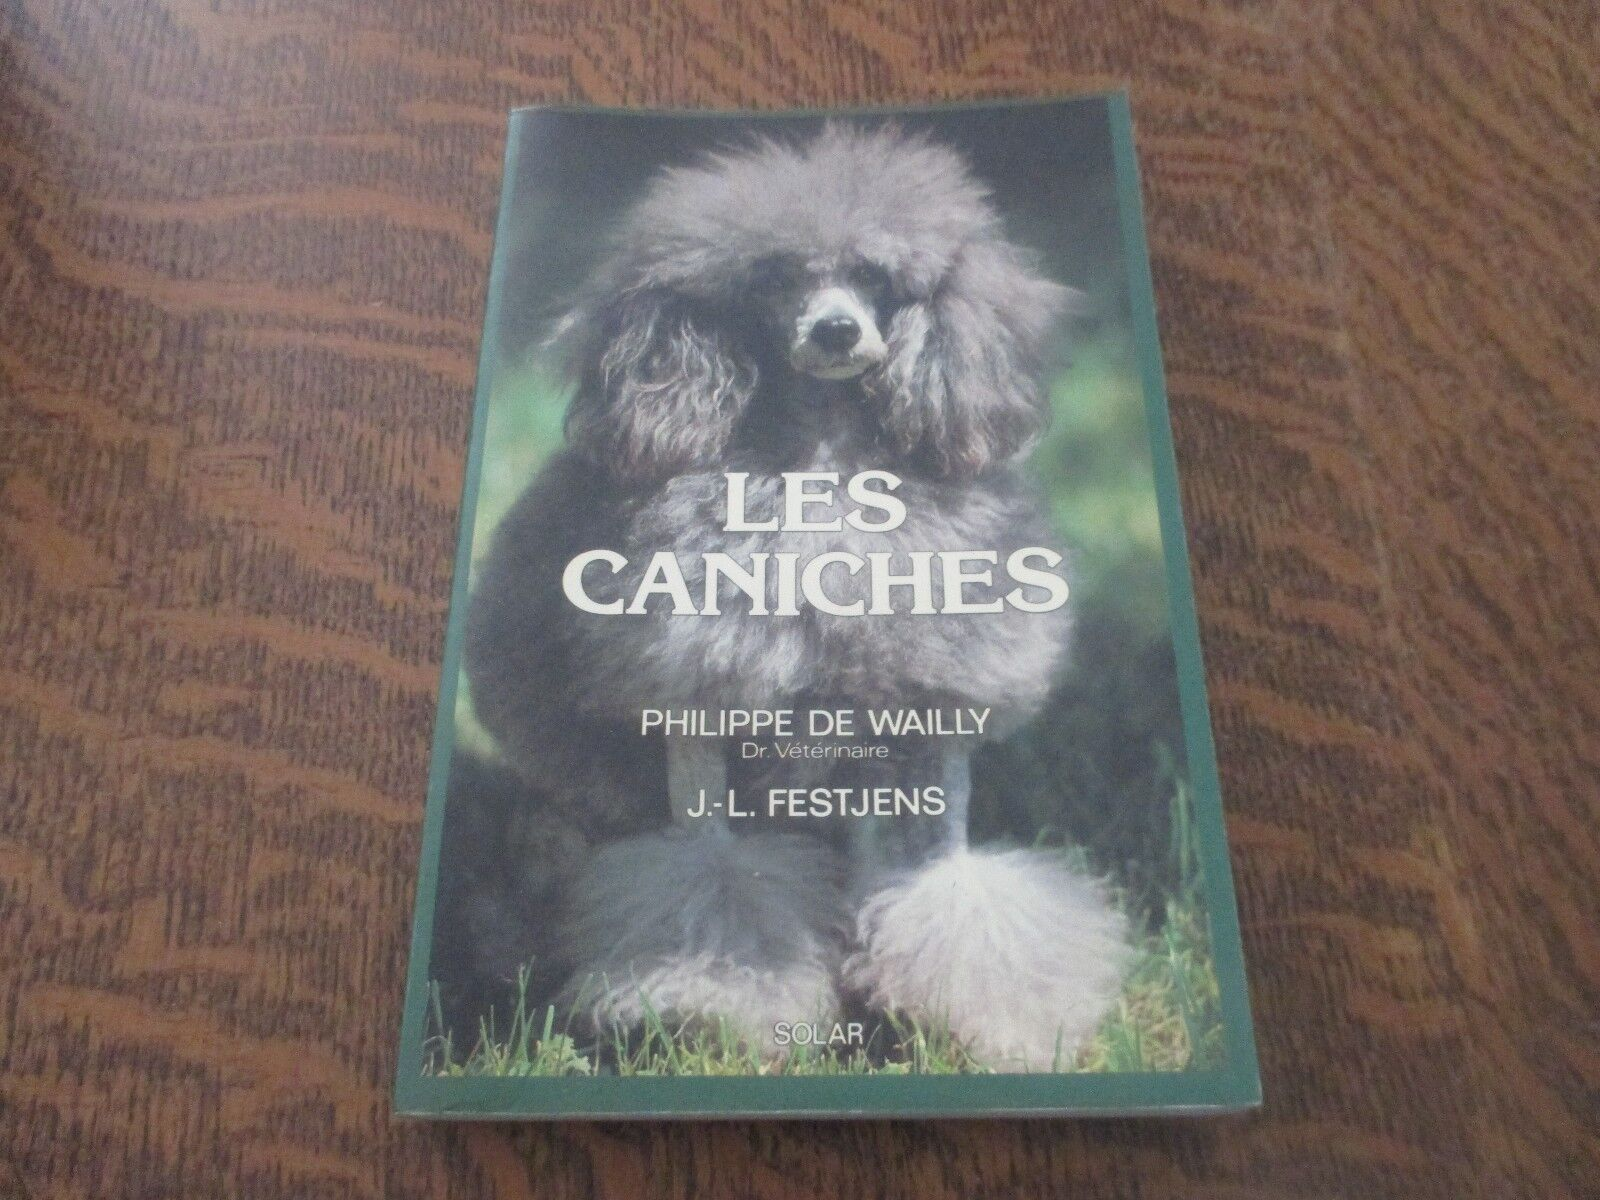 Les caniches - philippe de wailly